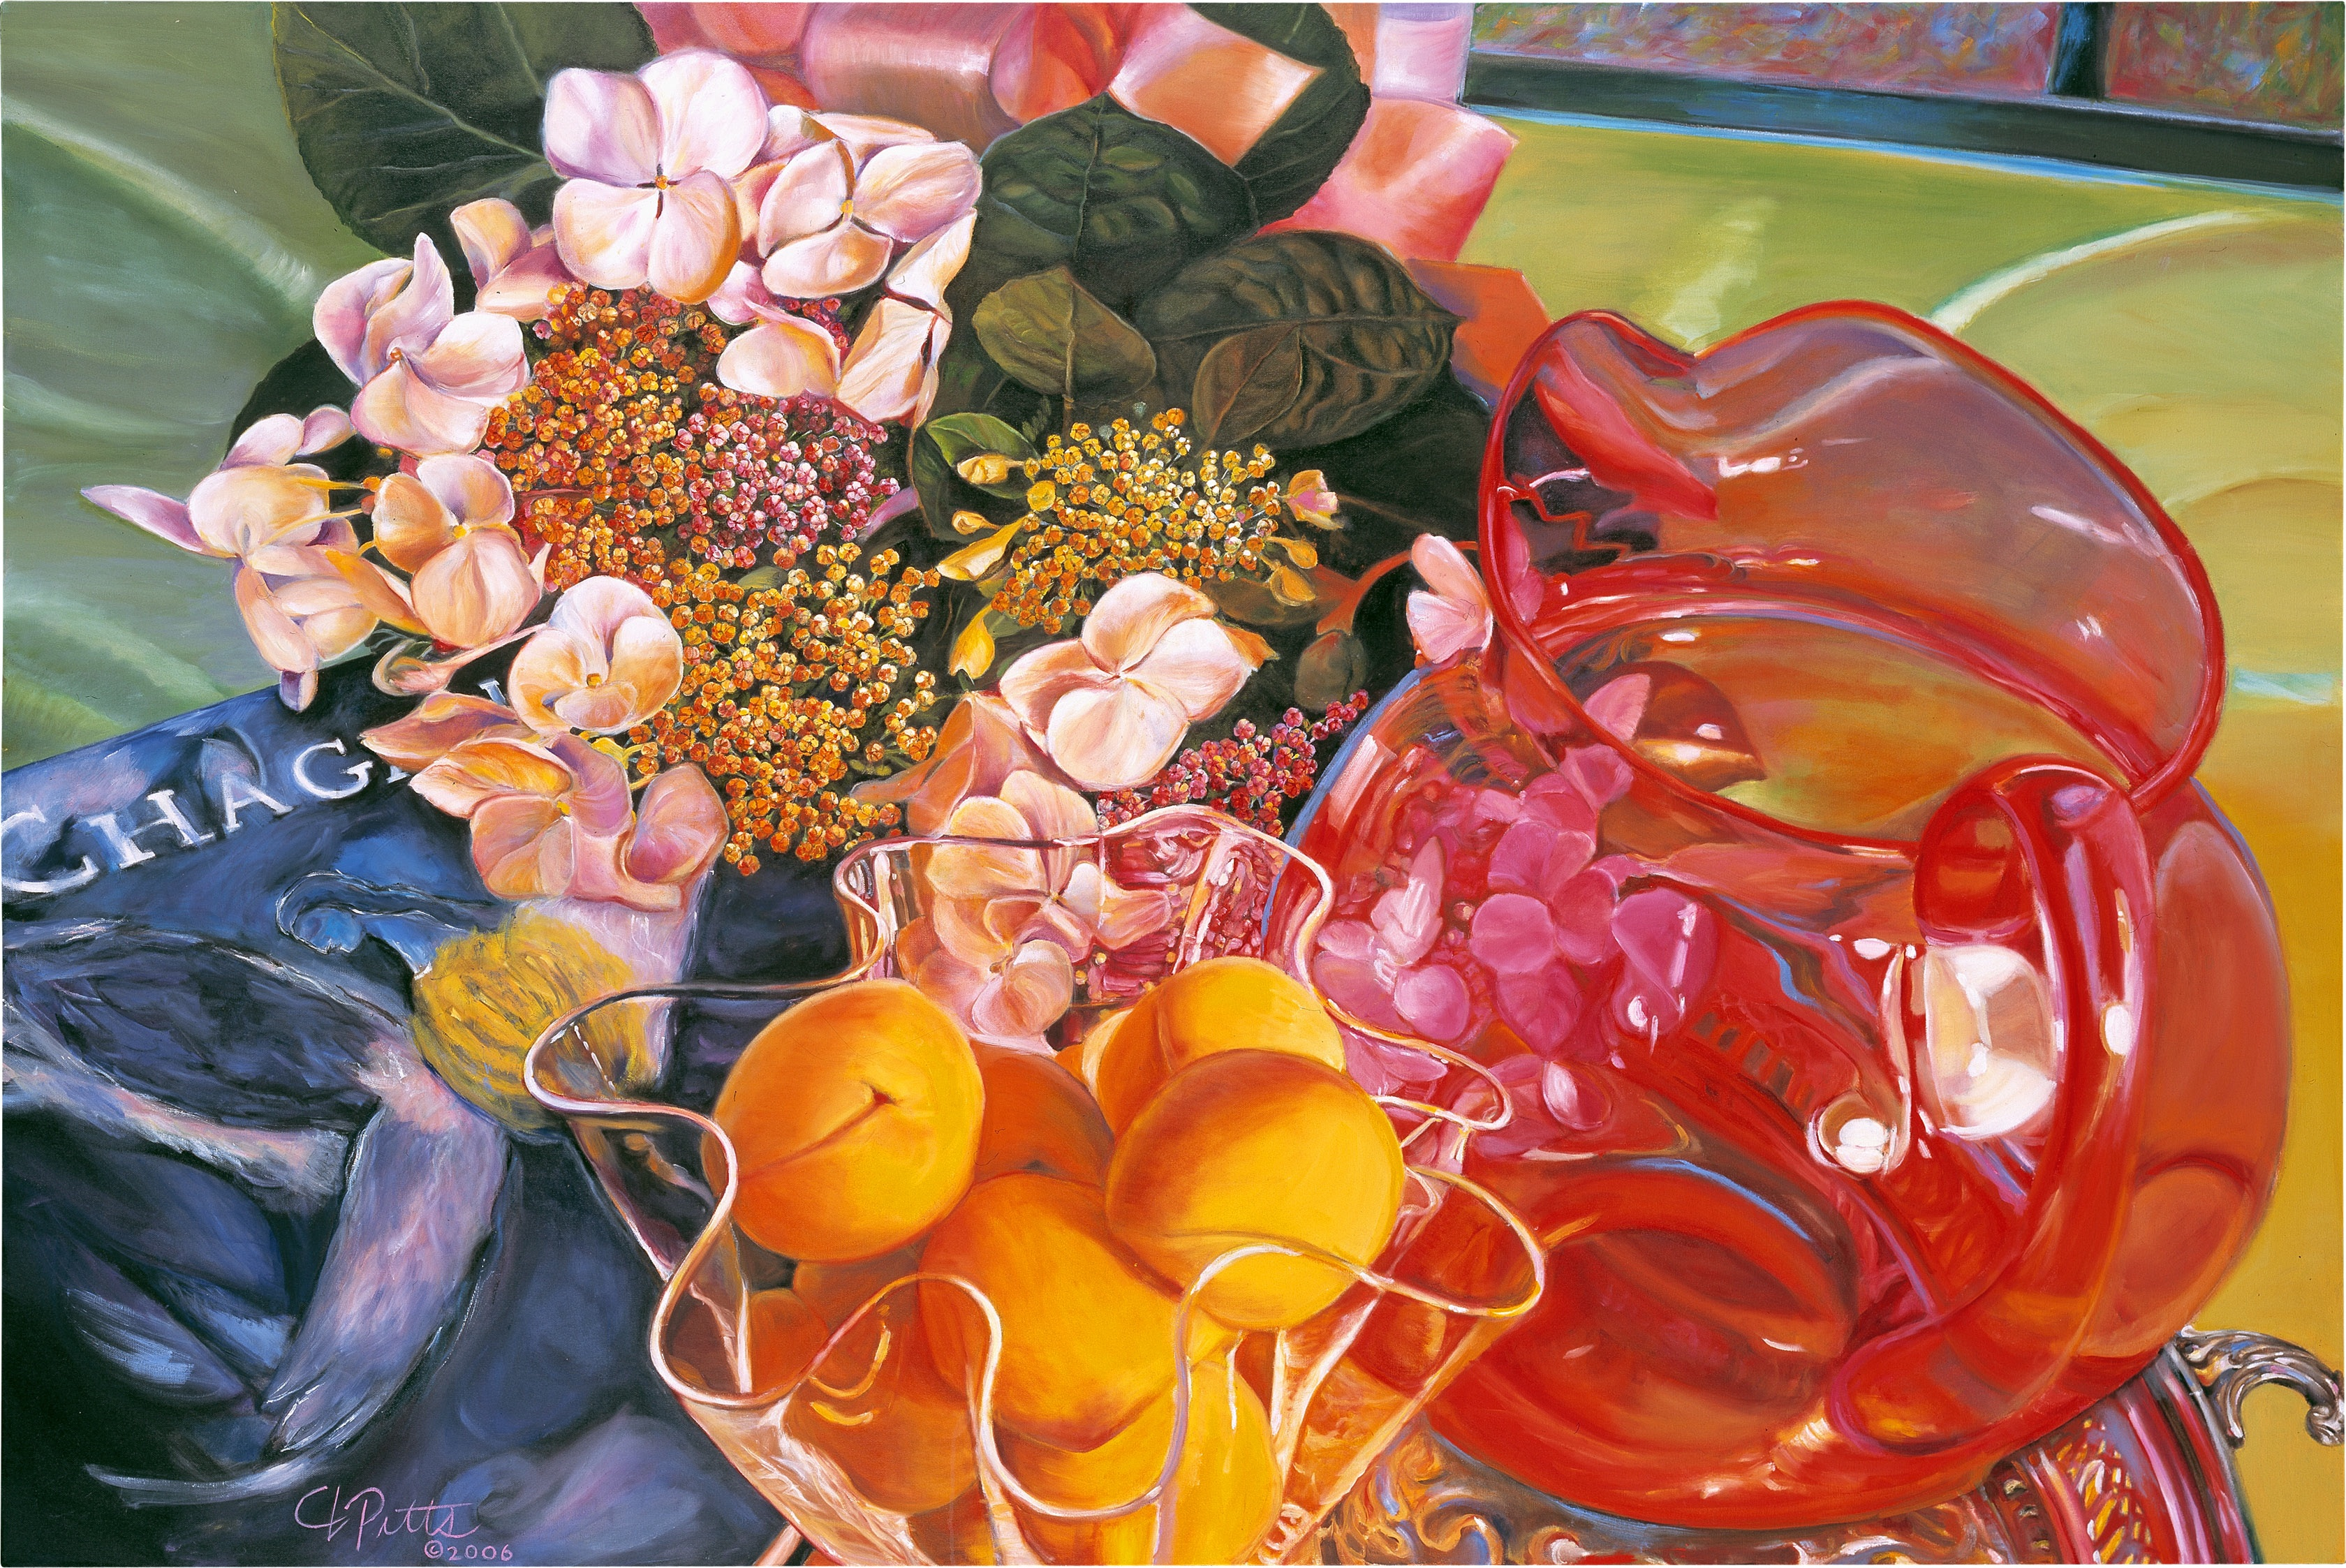 NOAPS Pitts Magenta Sunset, oil on canvas, 48x72 inches, collection of the artist